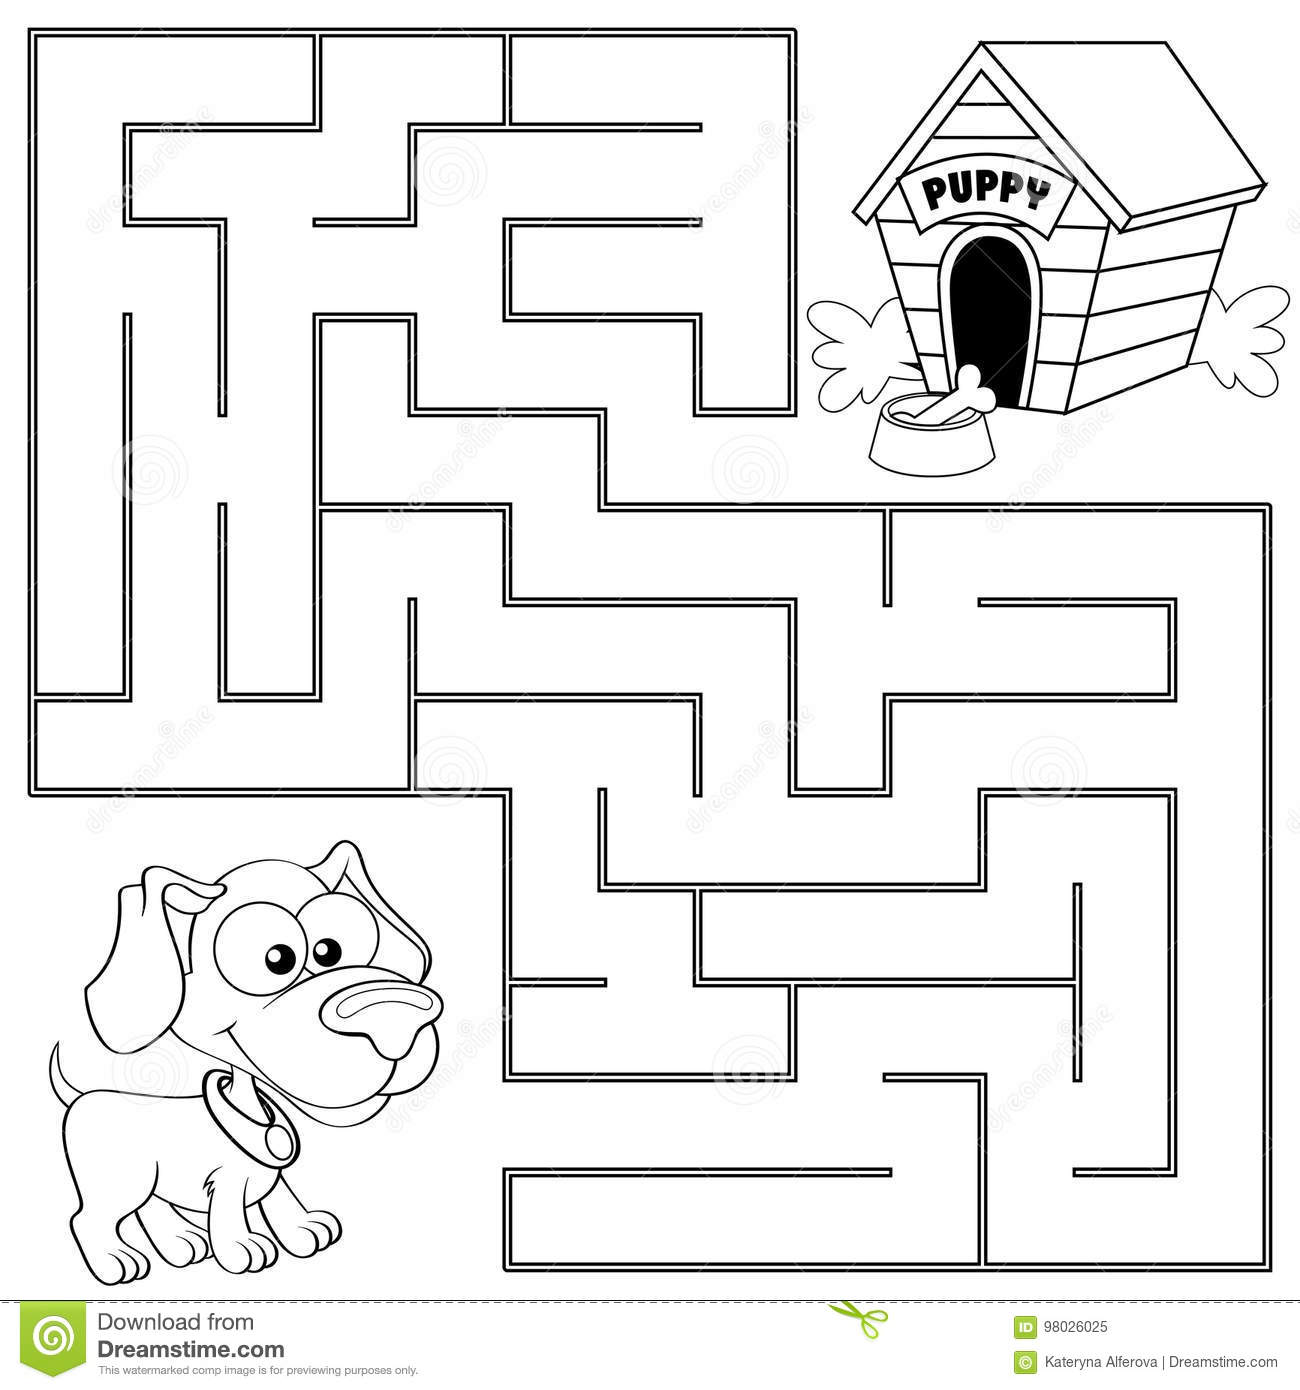 Help Puppy Find Path To His House Labyrinth Maze Game